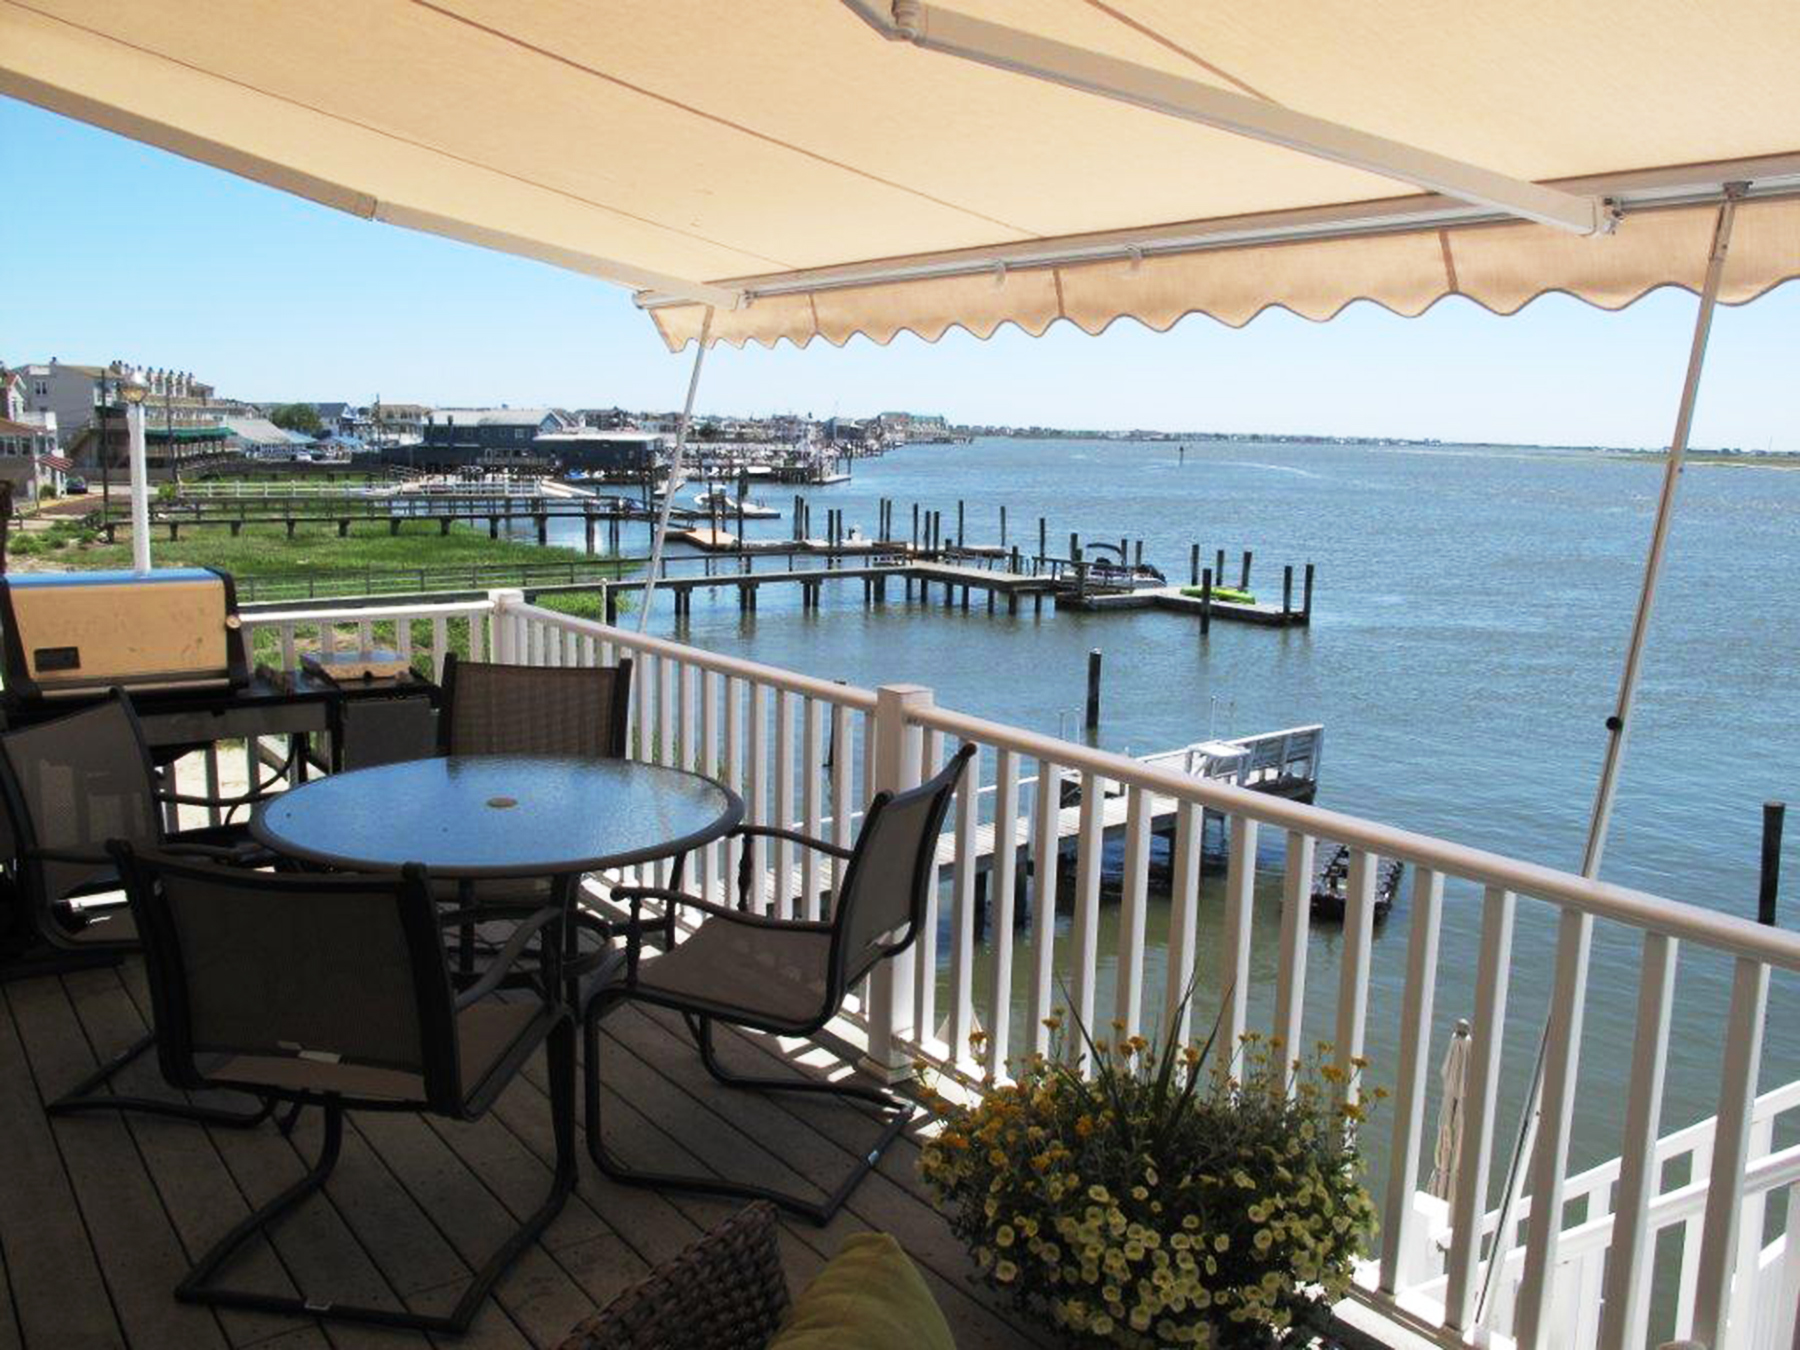 Betterliving Retractable Awnings